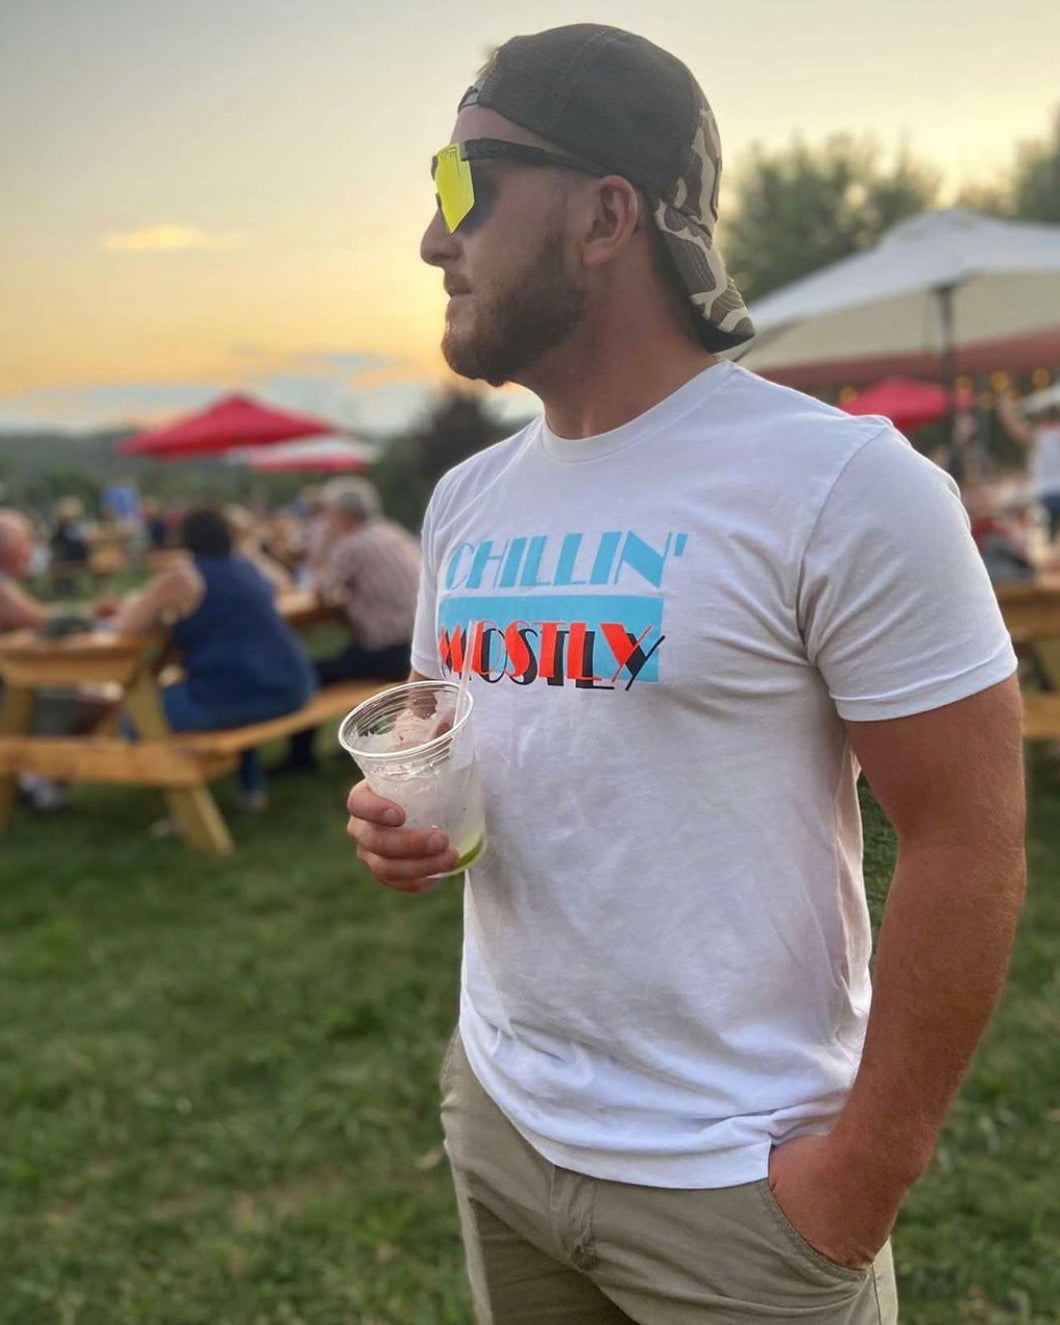 Chillin Mostly T shirt